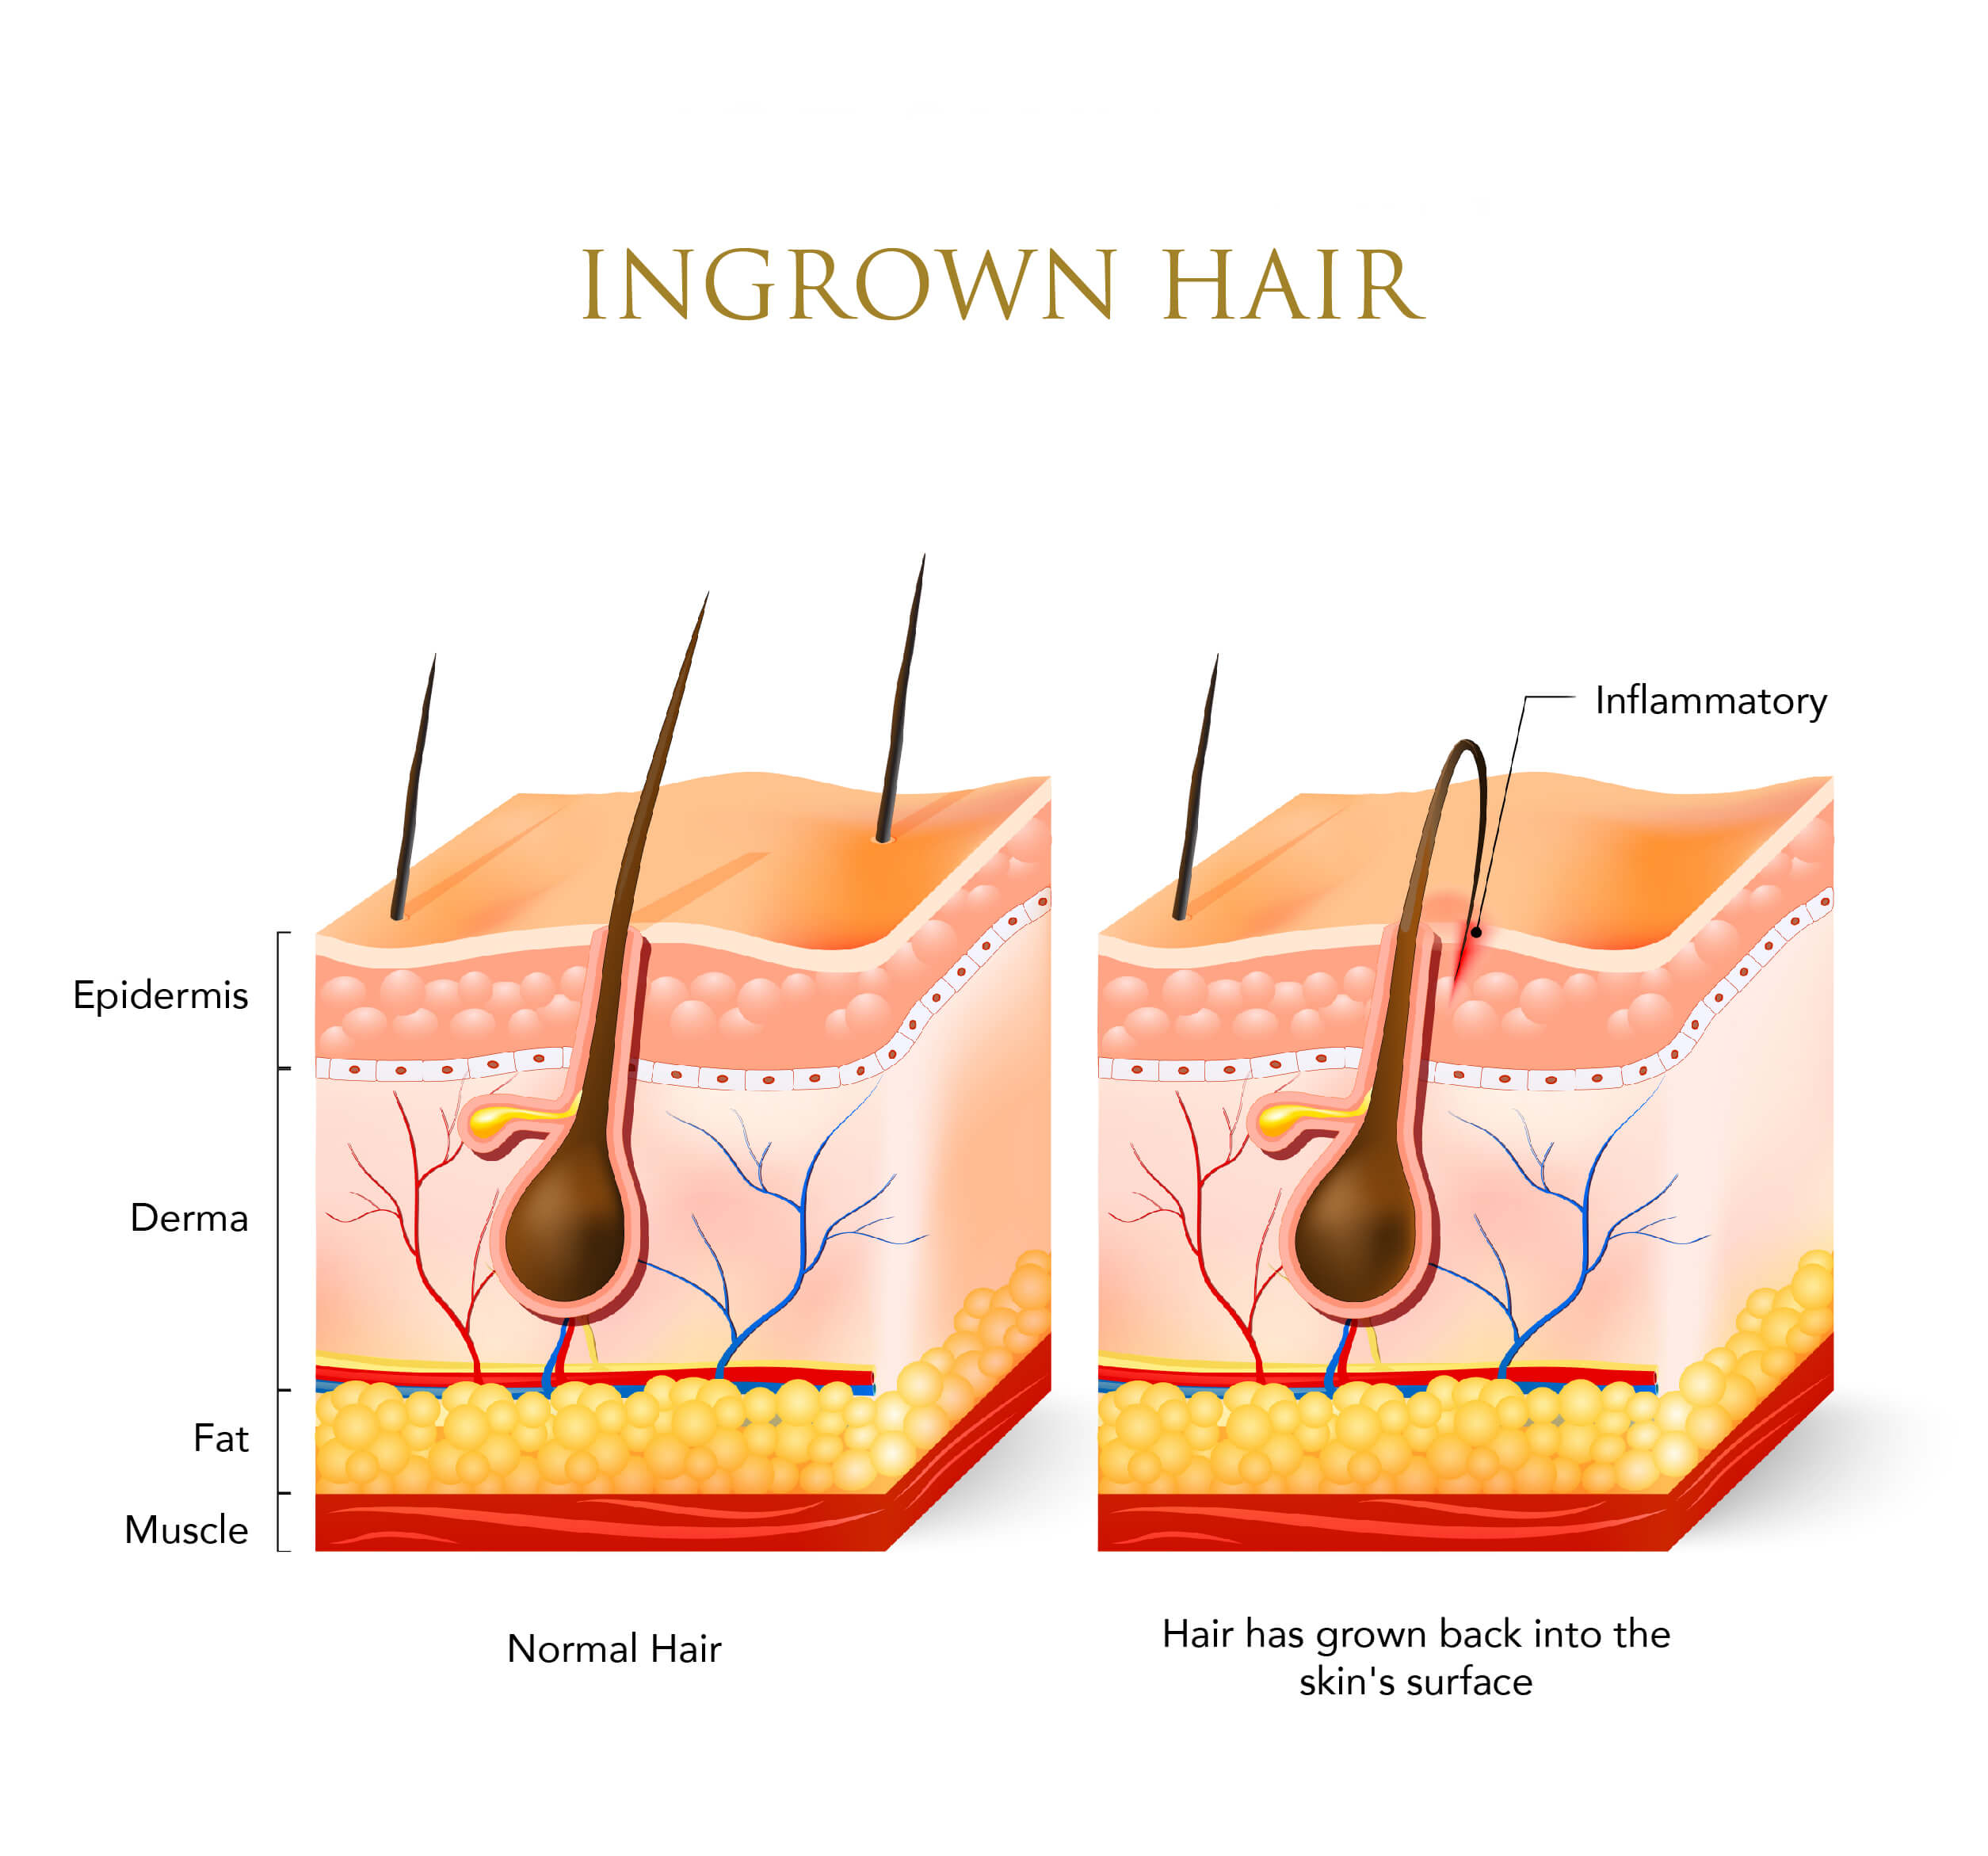 Infographic showing a normal hair and an ingrown hair